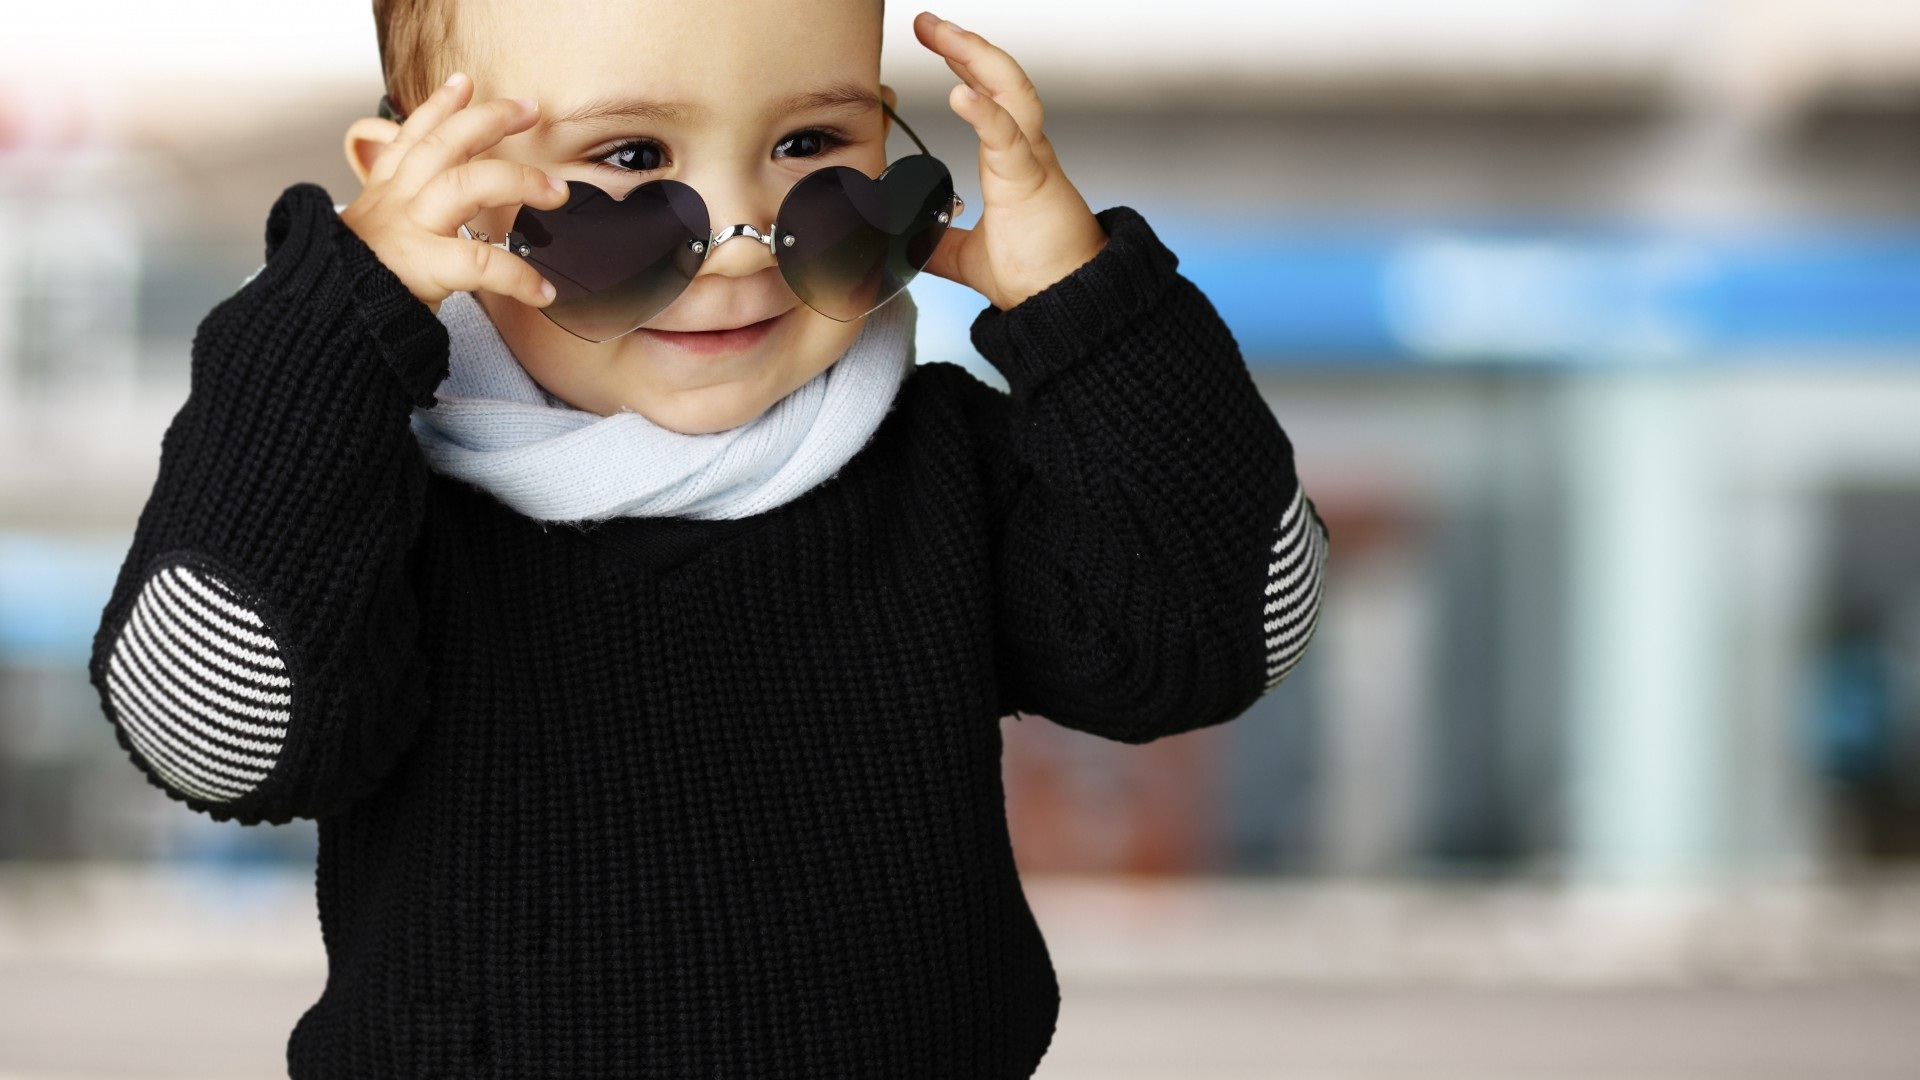 Baby Hd Wallpapers Top Free Baby Hd Backgrounds Wallpaperaccess